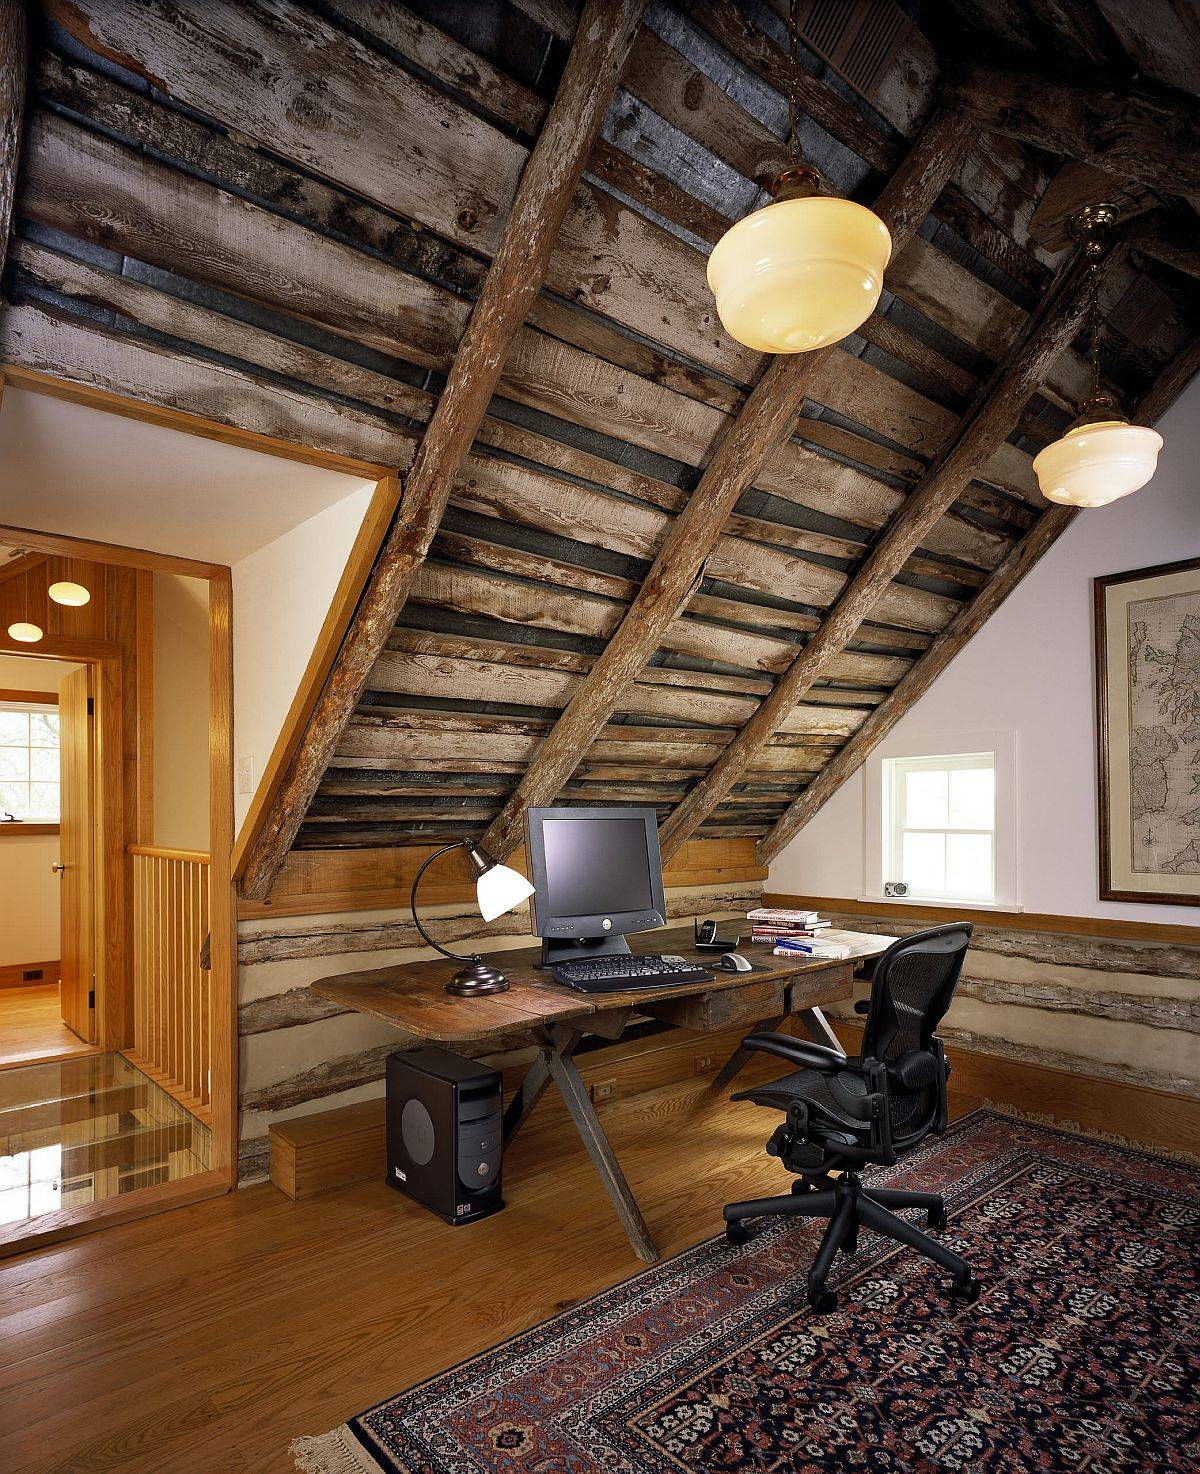 sloped-wooden-ceiling-of-the-attic-worksplace-is-just-perfect-for-the-small-rustic-office-48789